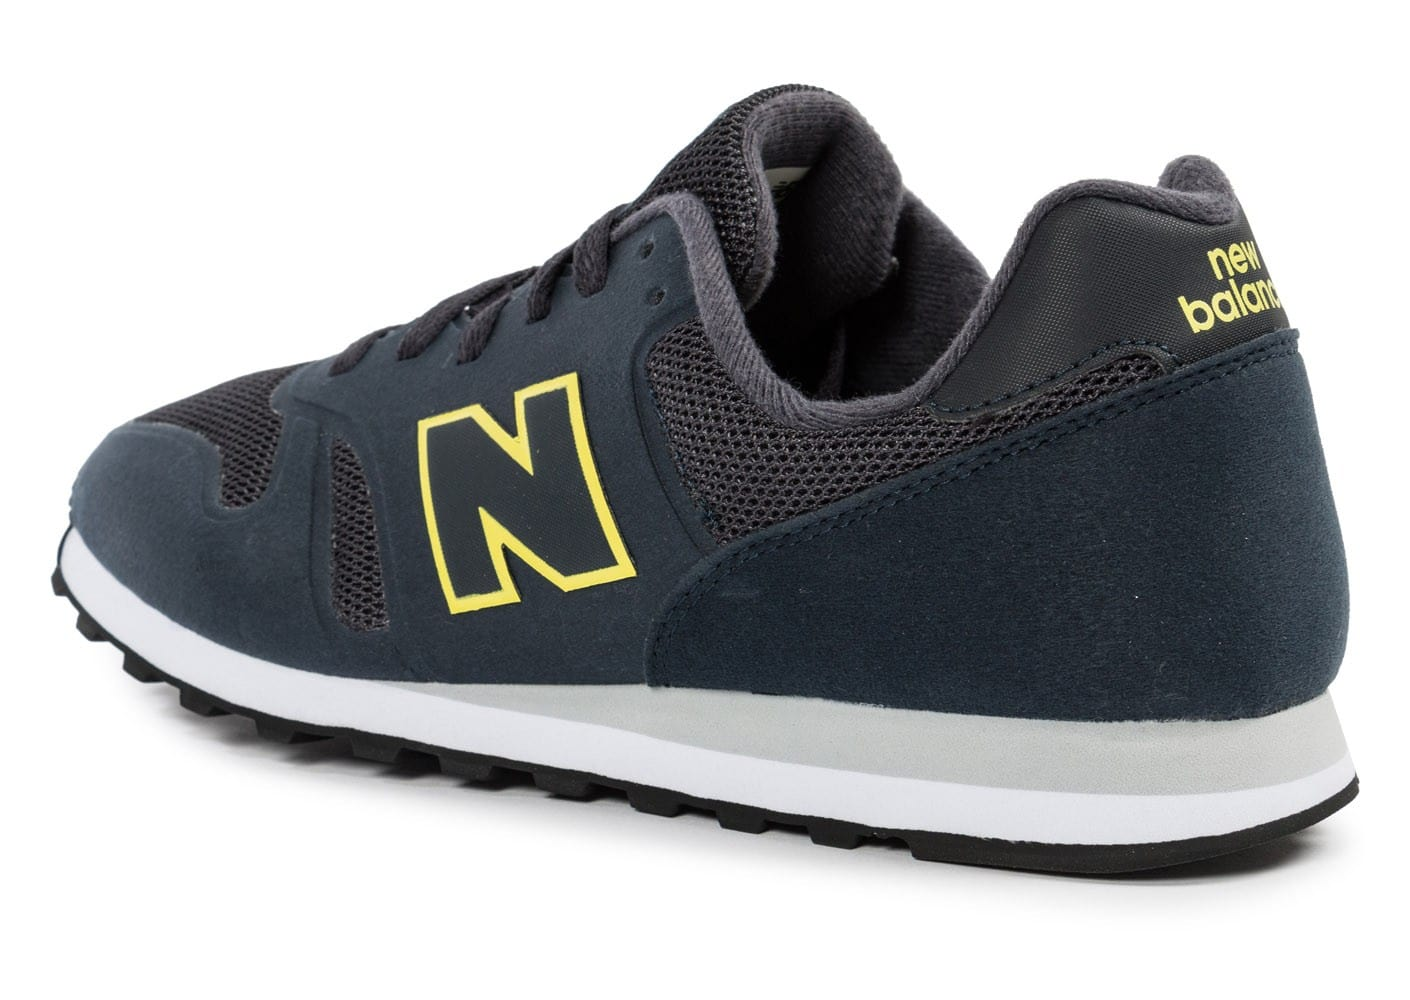 check out 562eb 6a270 0538-chaussures-new-balance-md373-ny-bleu-marine-vue-arriere 1.jpg